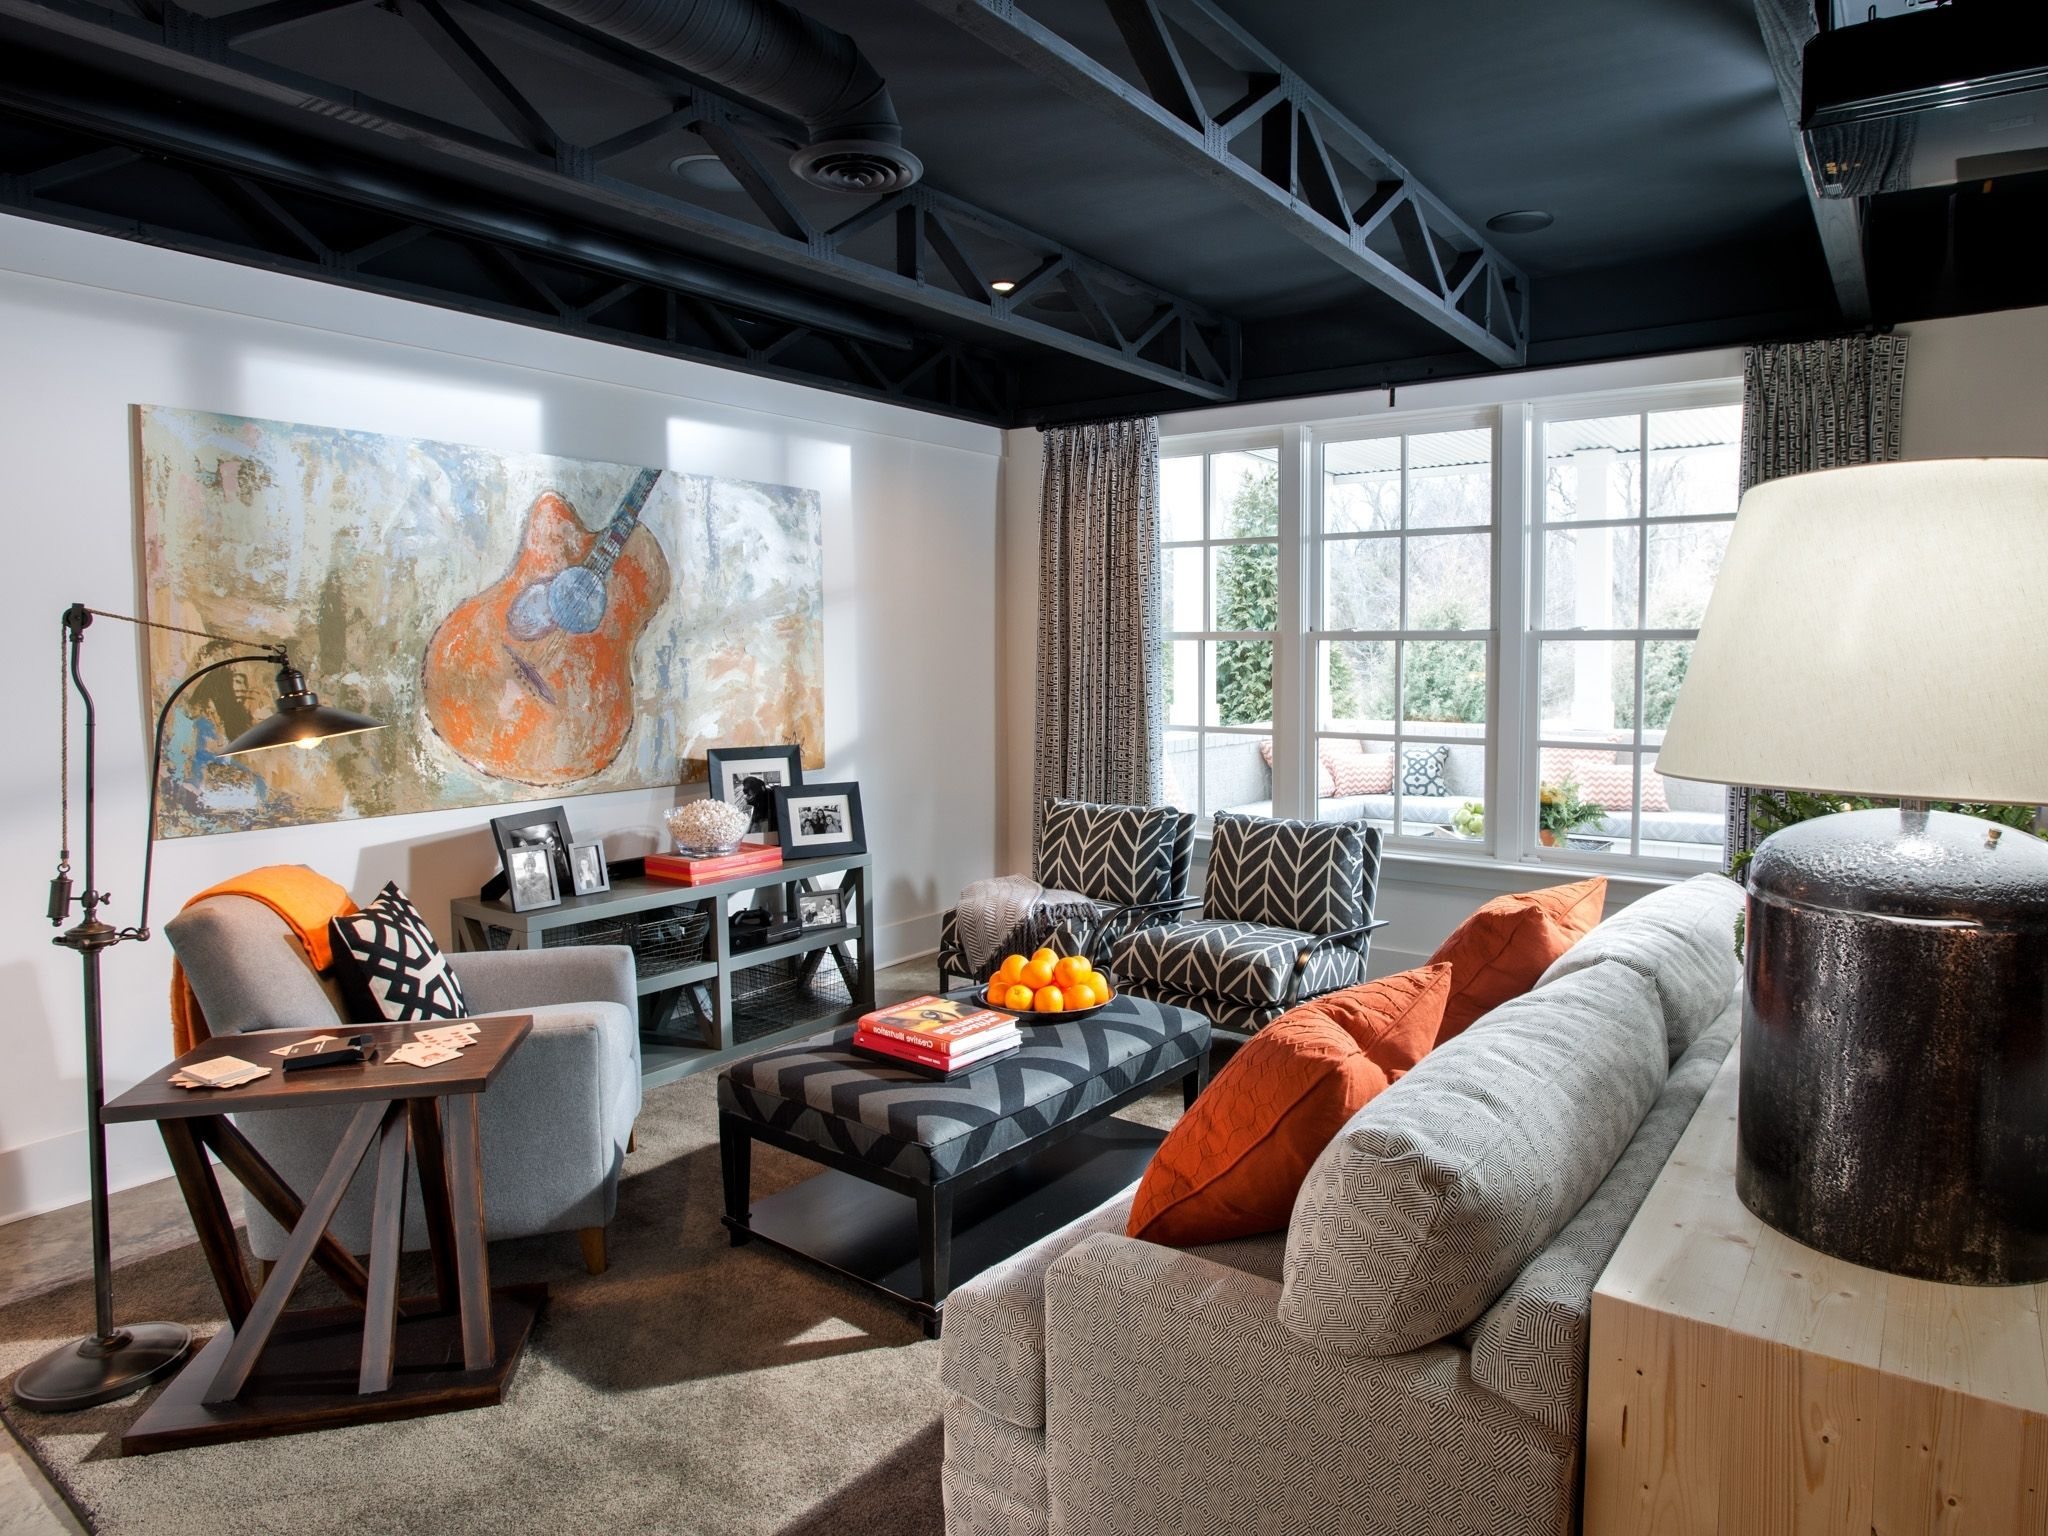 Ind Ideas And Inspiration For Recreation Room To Add Your Own Home